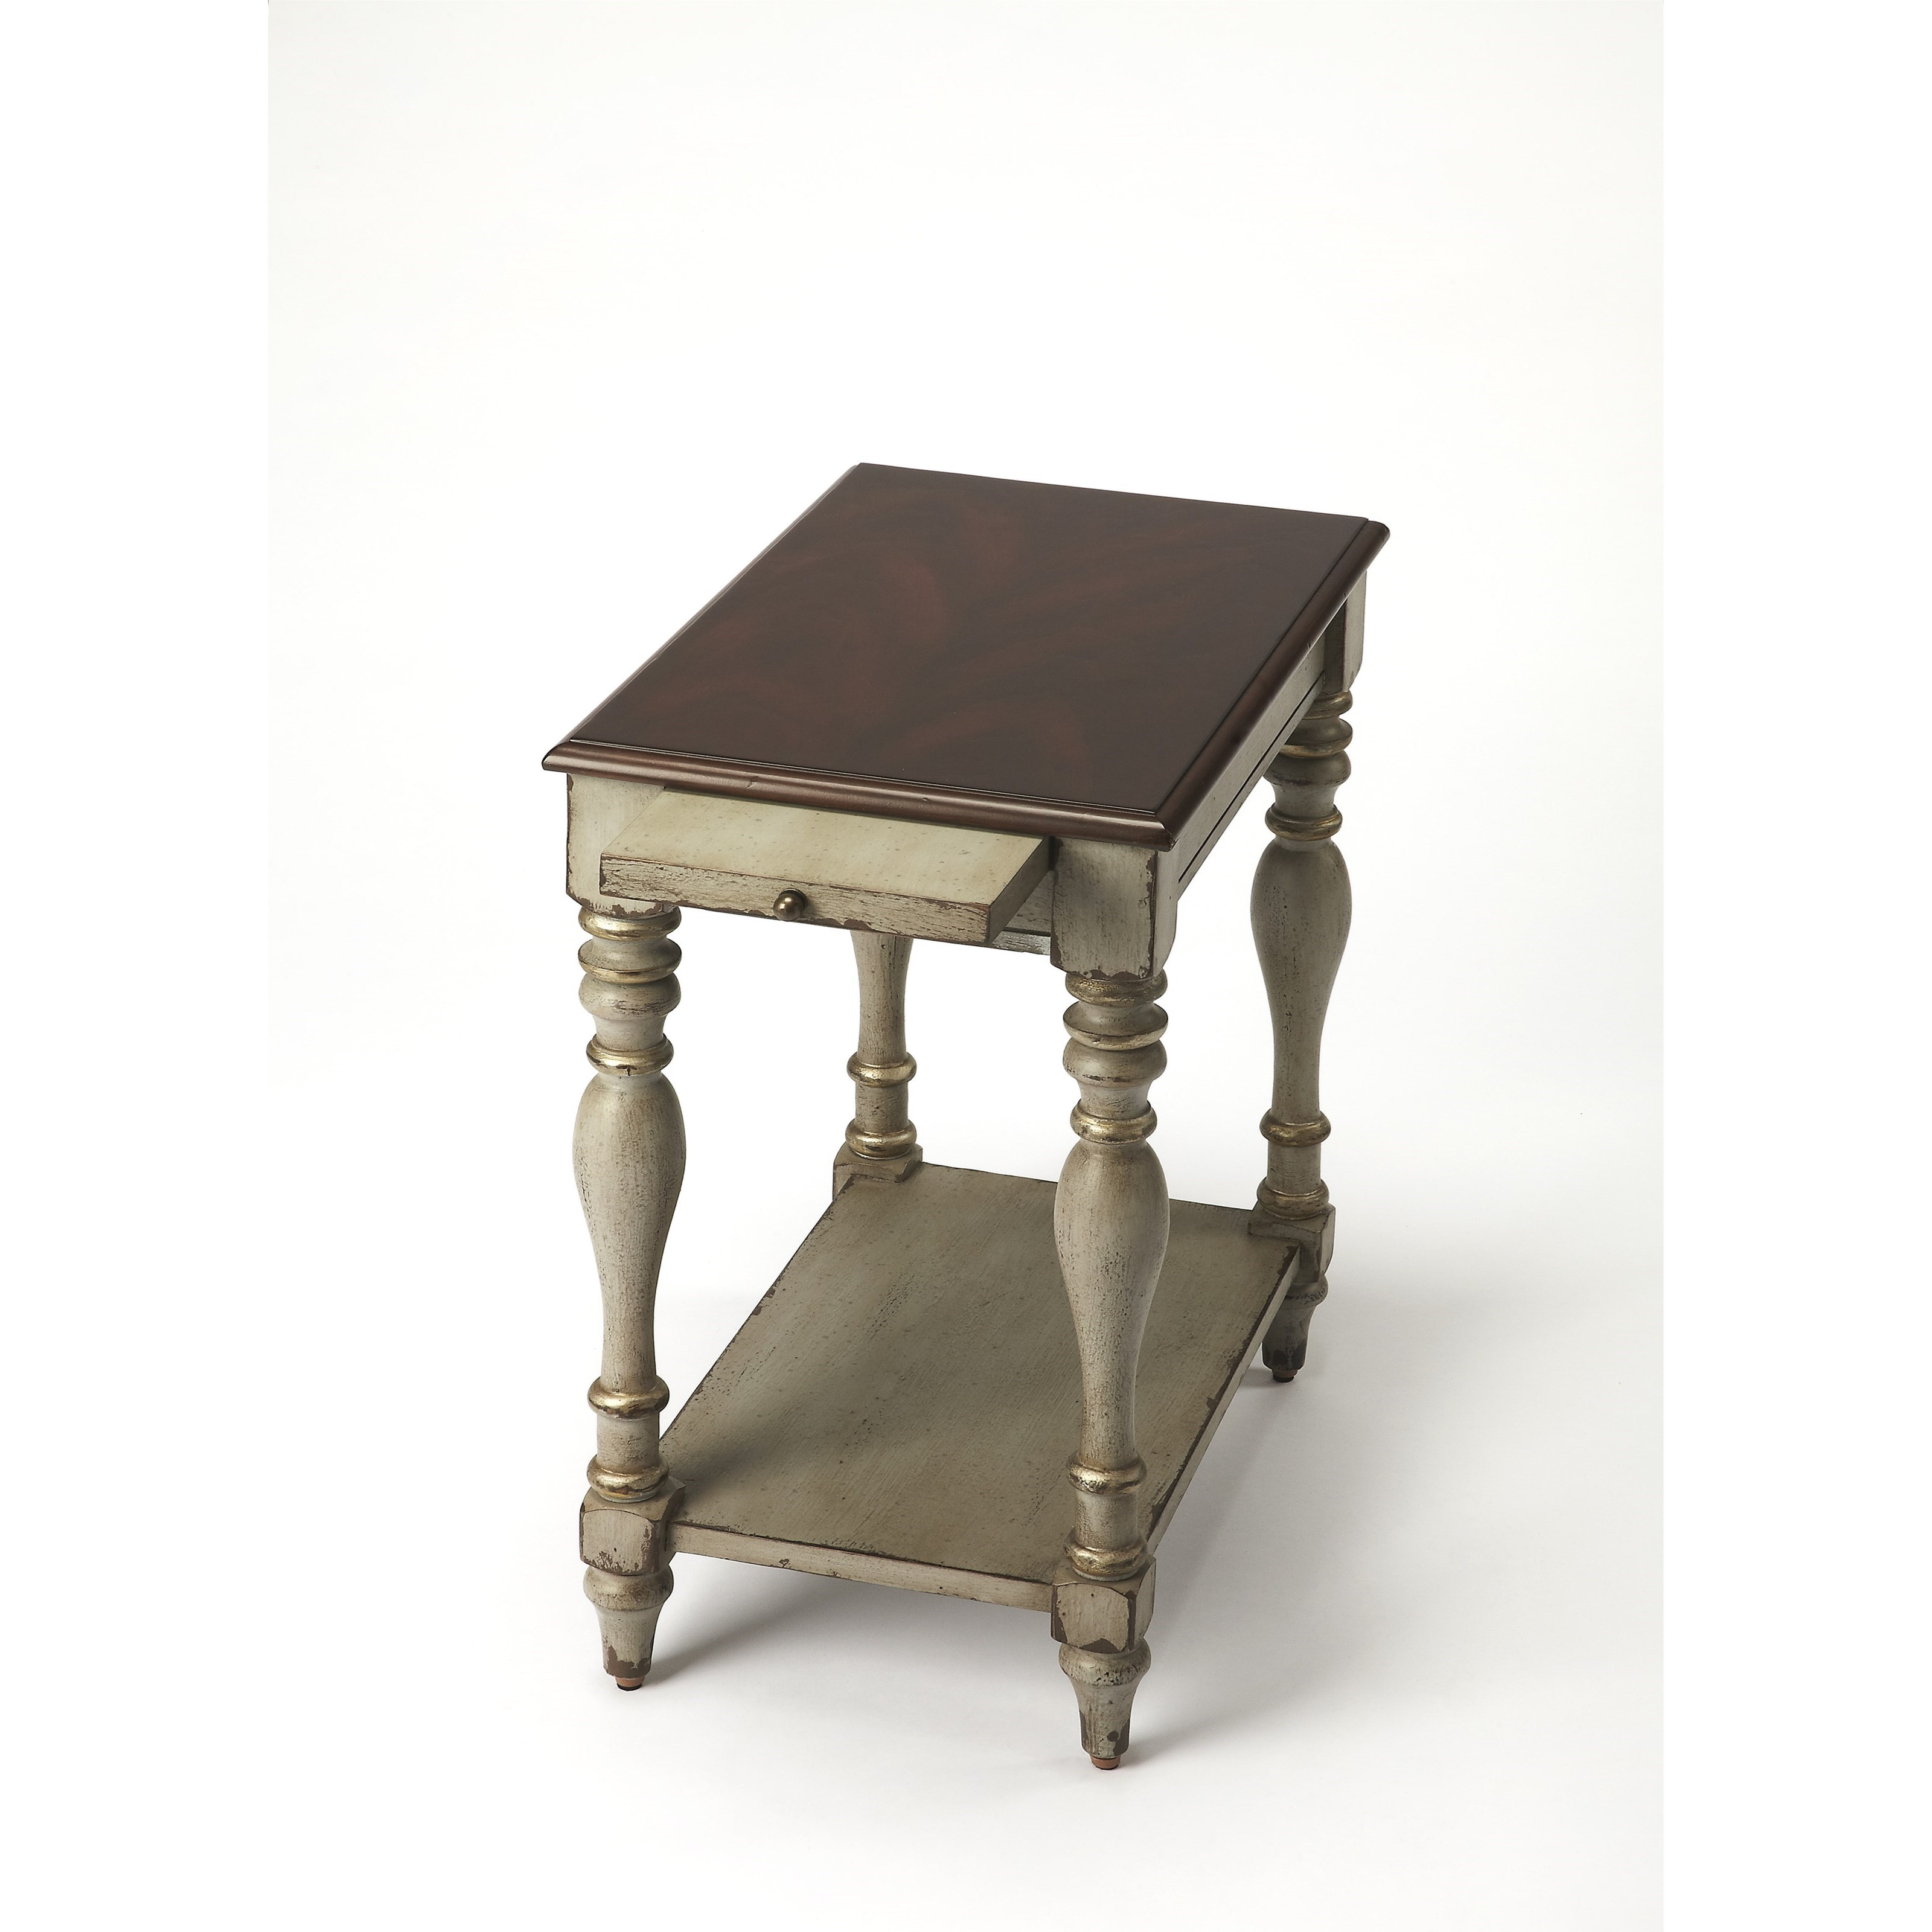 Butler Specialty Company Artist's Originals Chairside Table - Item Number: 3518359